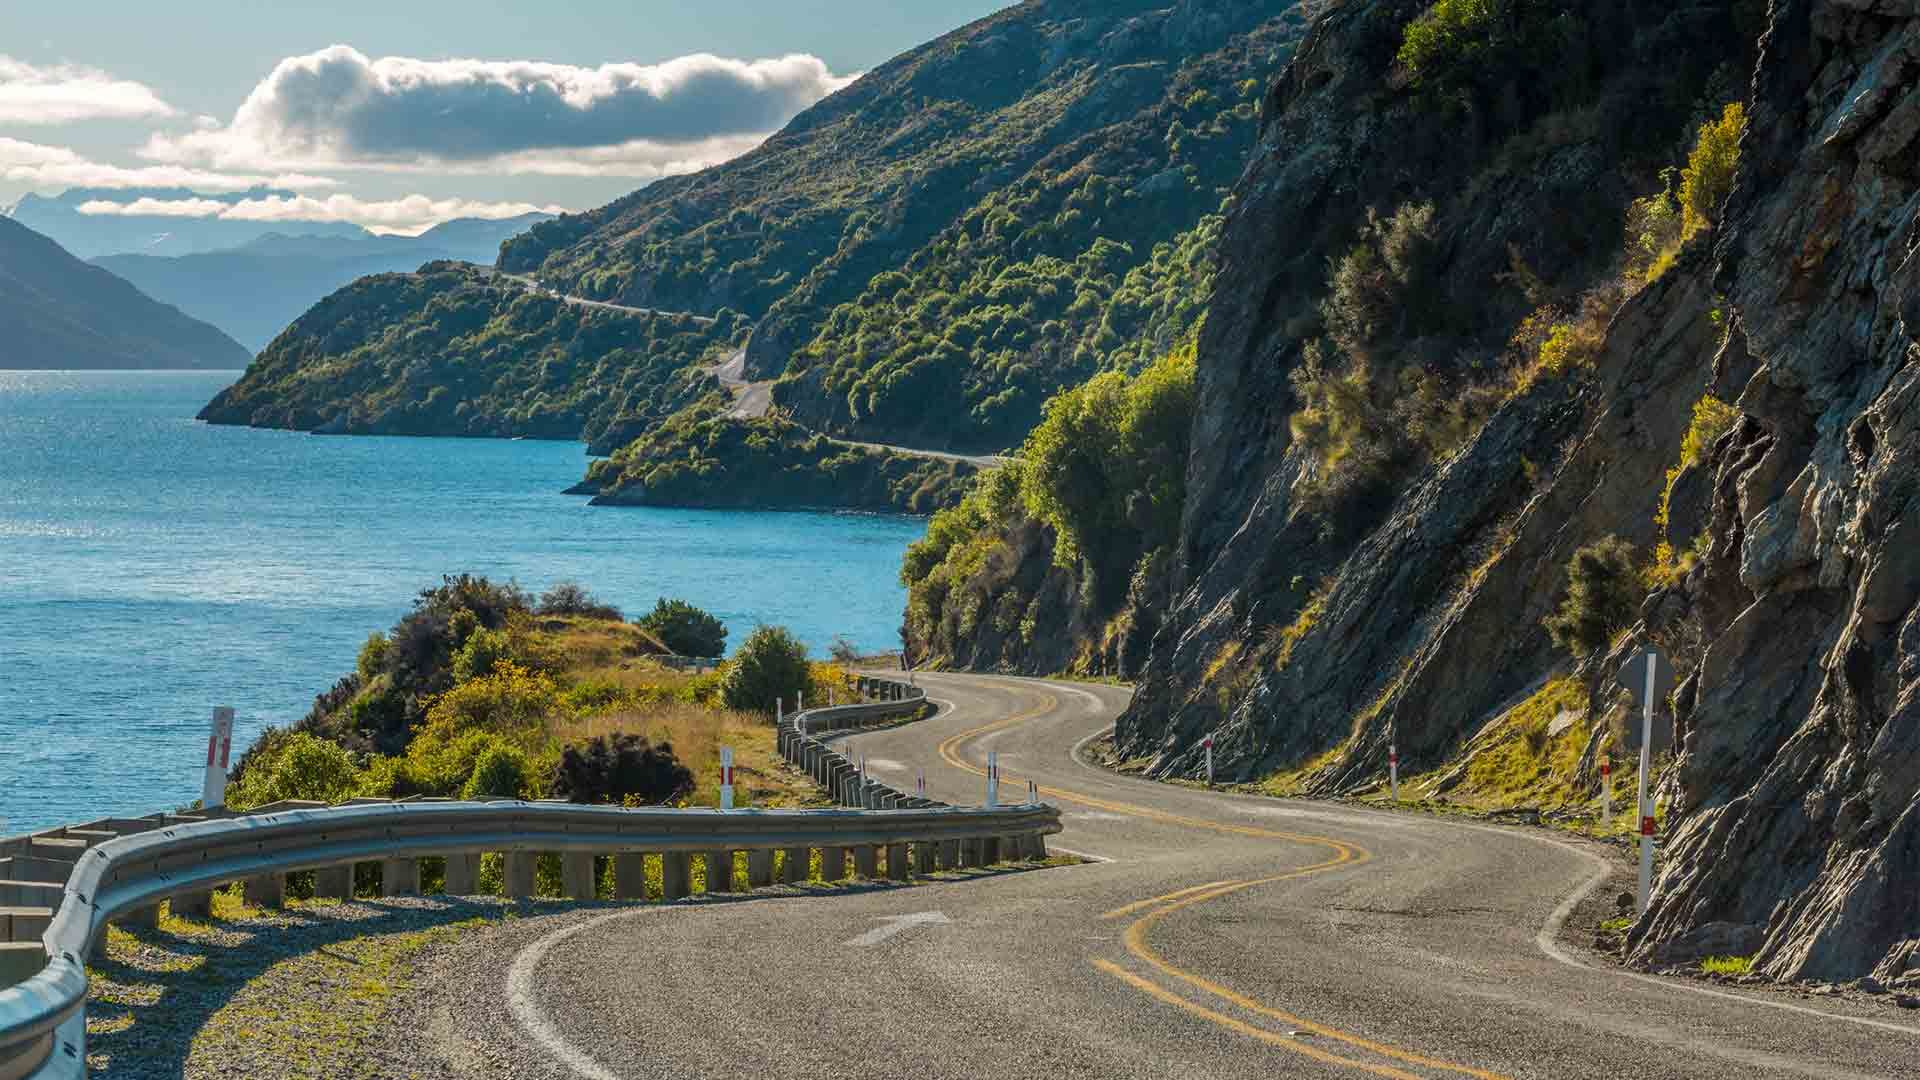 New Zealand Honeymoons and Romantic Getaways - About New